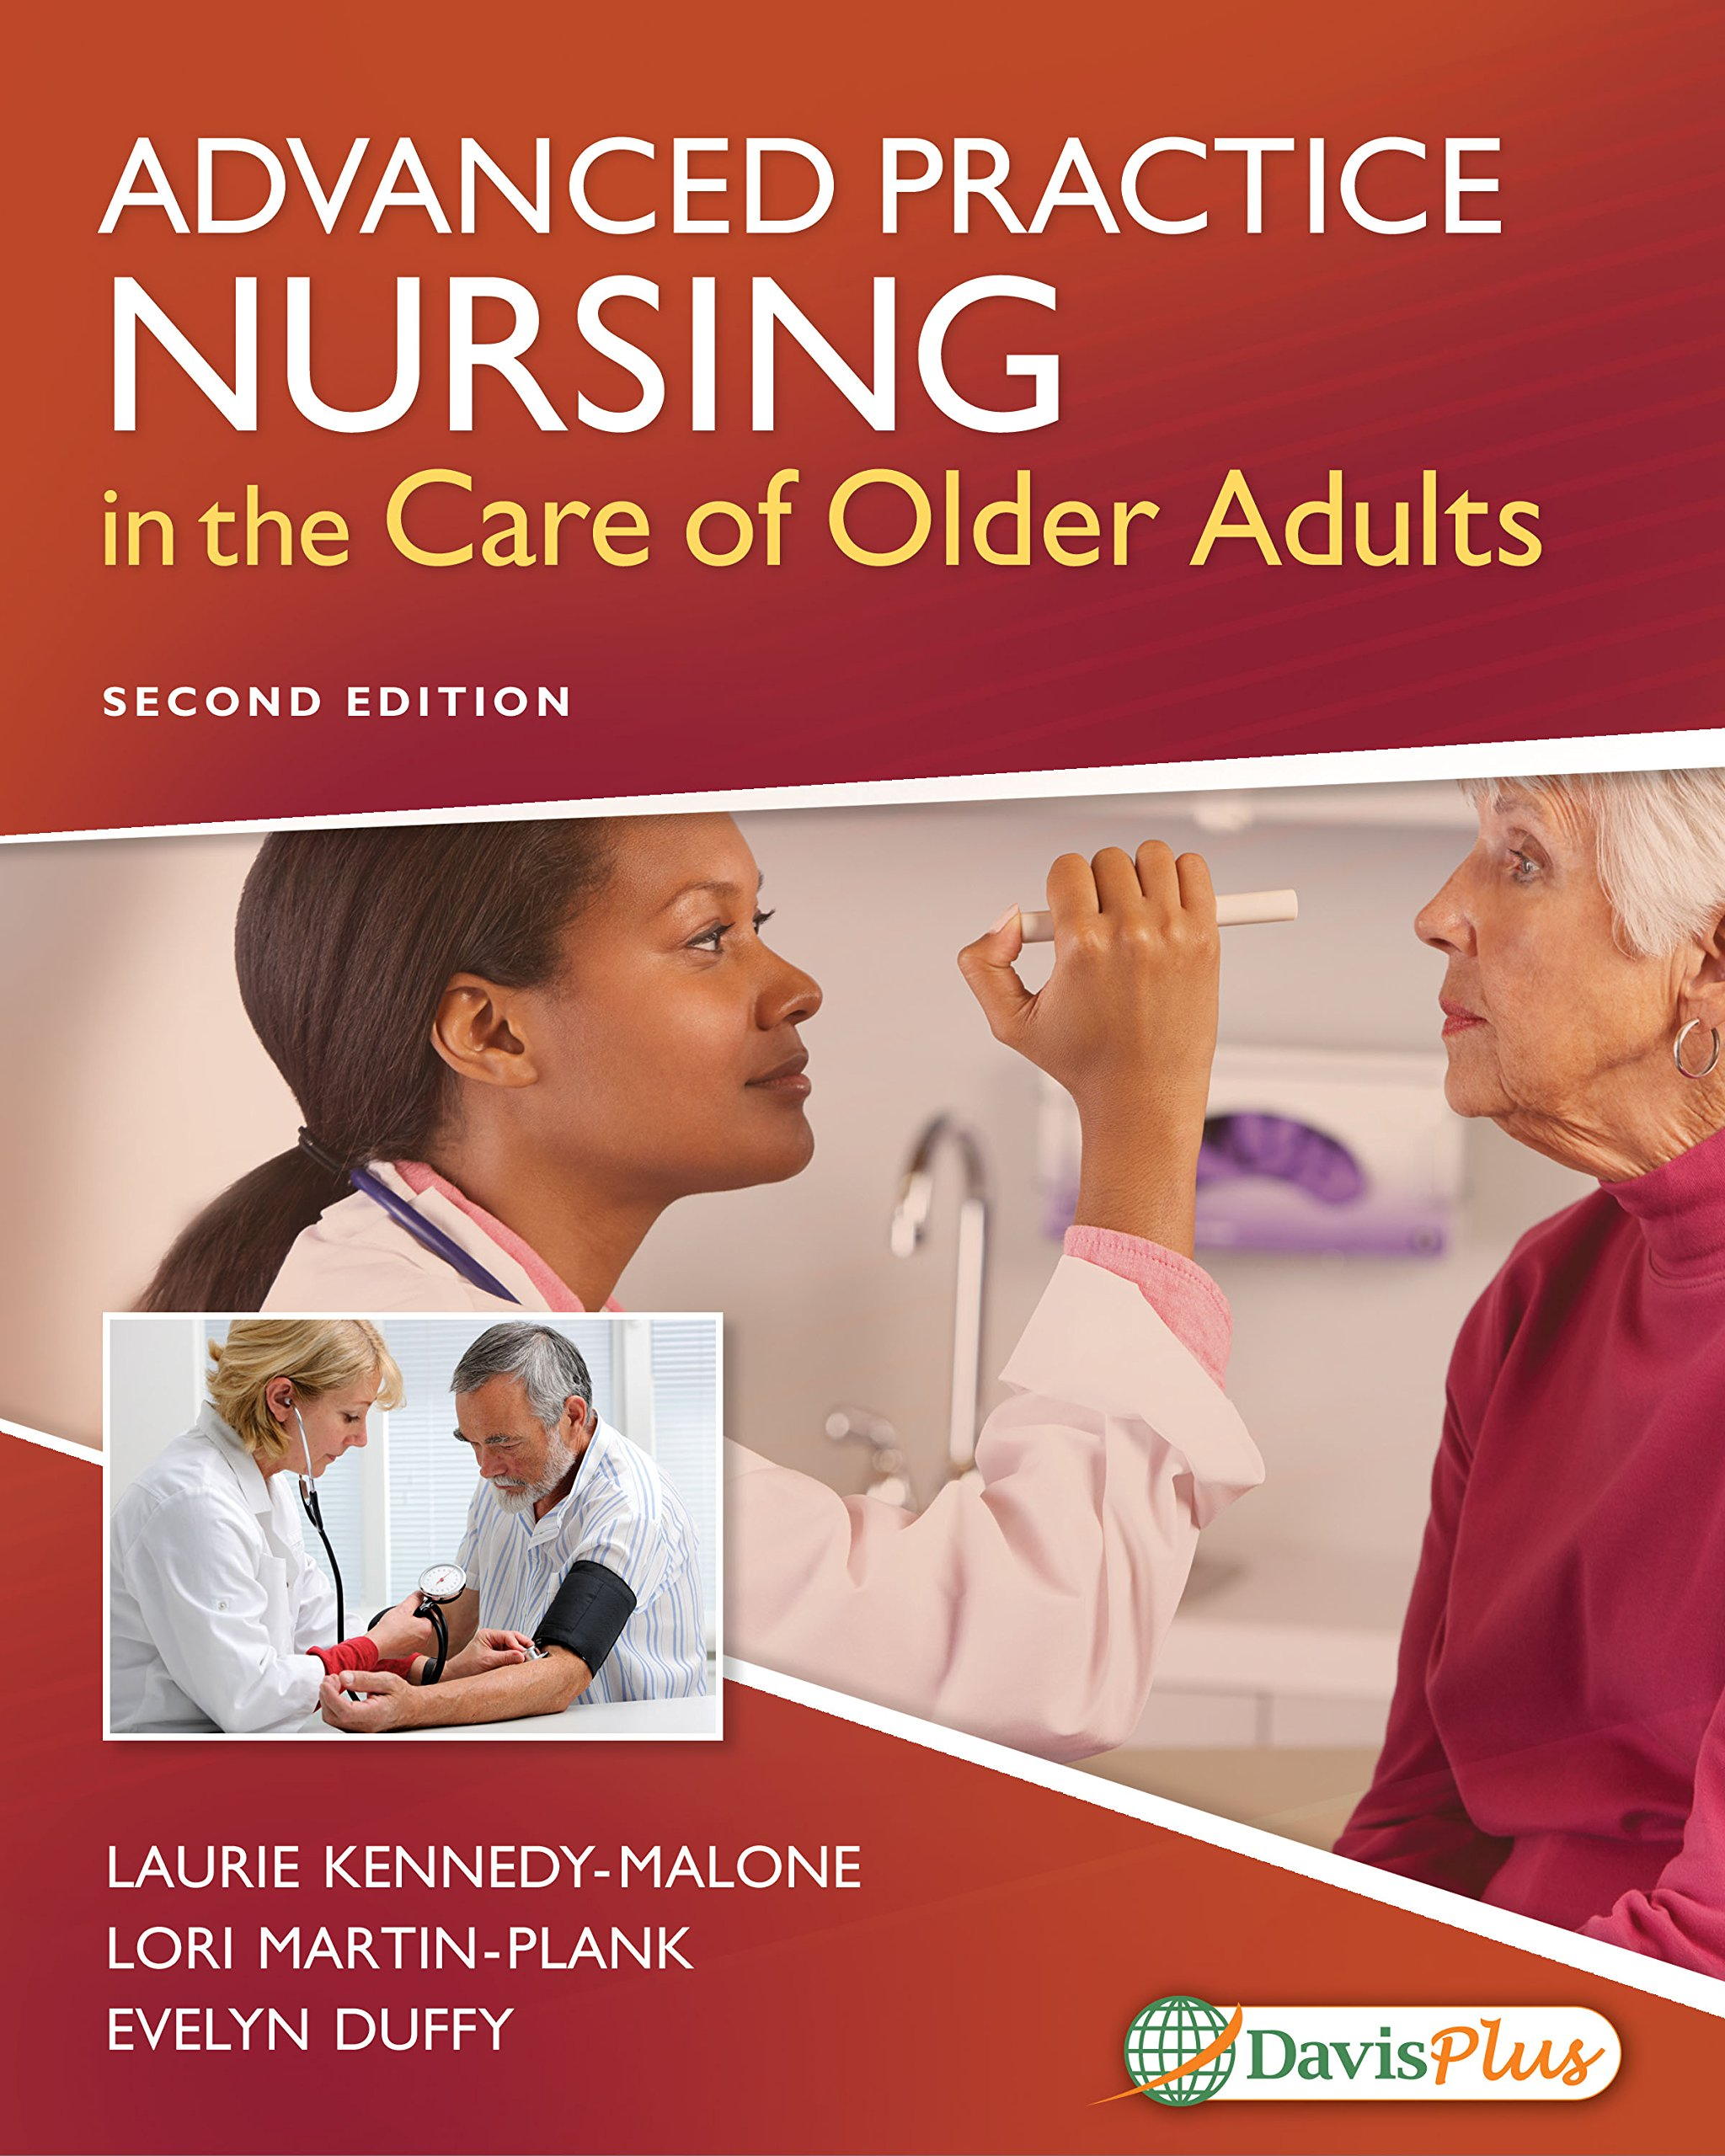 Advanced Practice Nursing in the Care of Older Adults: Amazon.co.uk: Laurie  Kennedy-Malone, Lori Martin-Plank: 9780803666610: Books